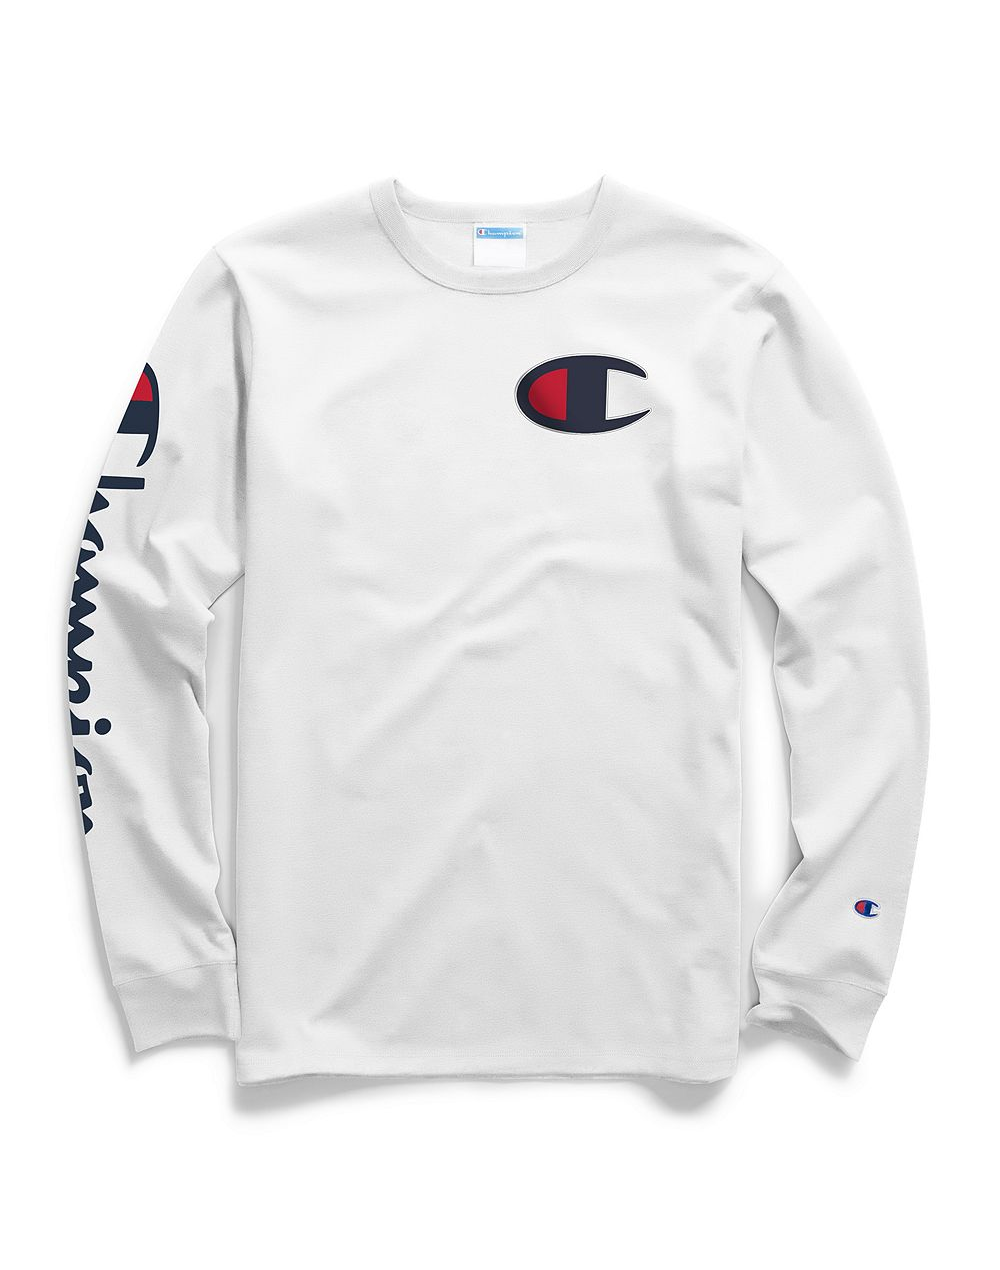 Champion Life® Men's Long-Sleeve Tee, Big C Logo White - City Limit NY